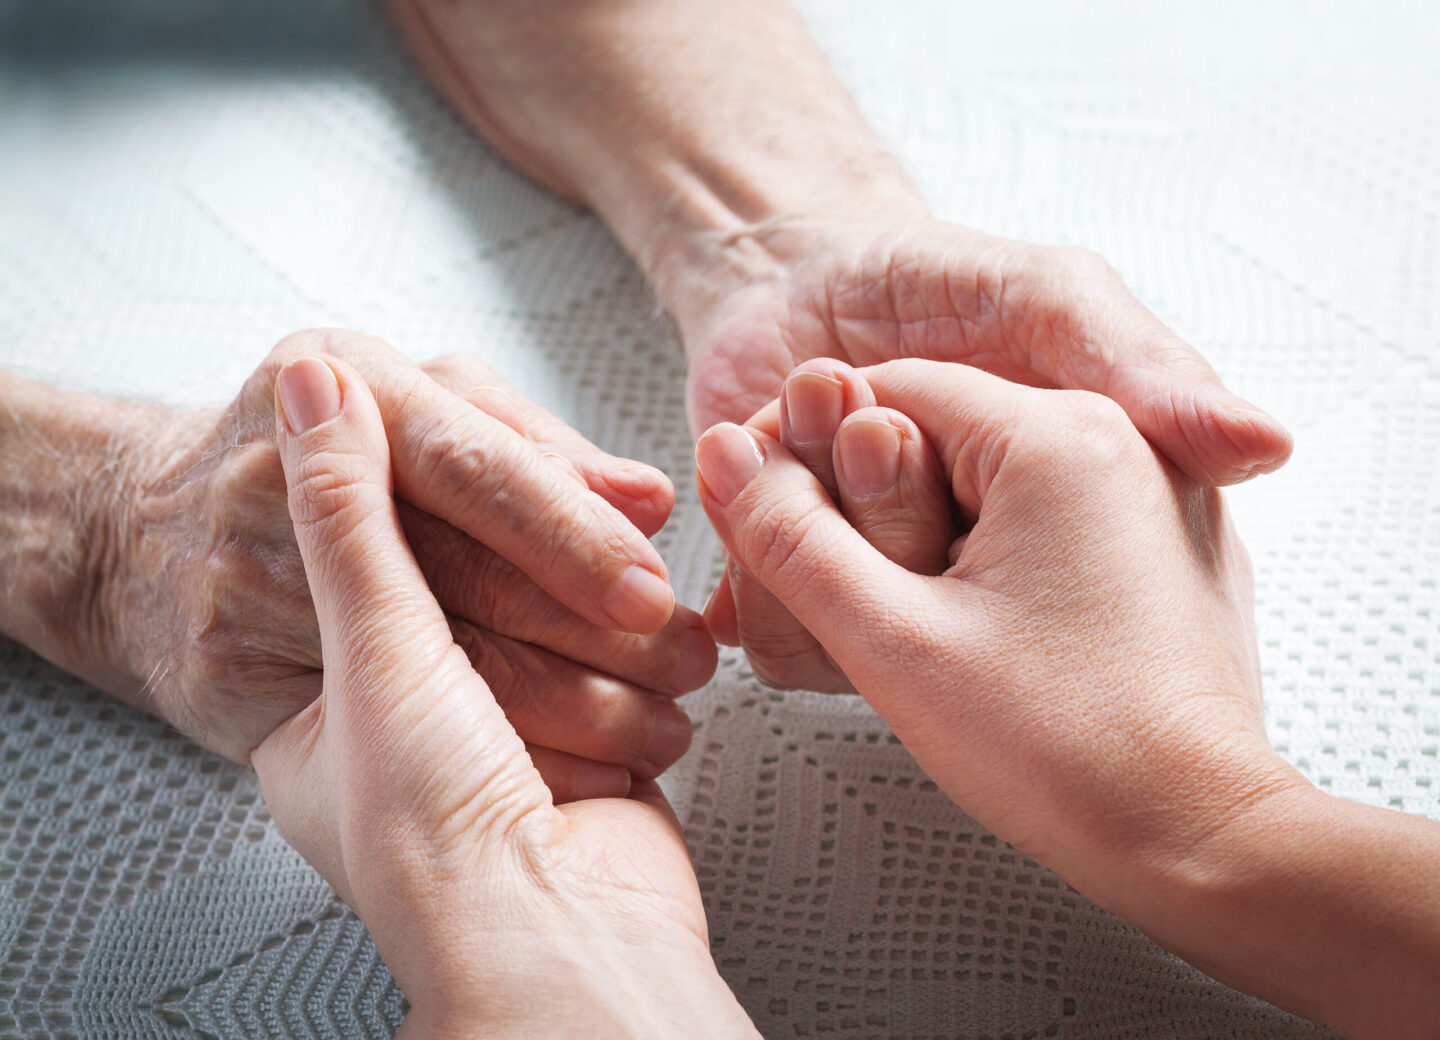 Helping,Hands,,Care,For,The,Elderly,Concept.,Care,Is,At